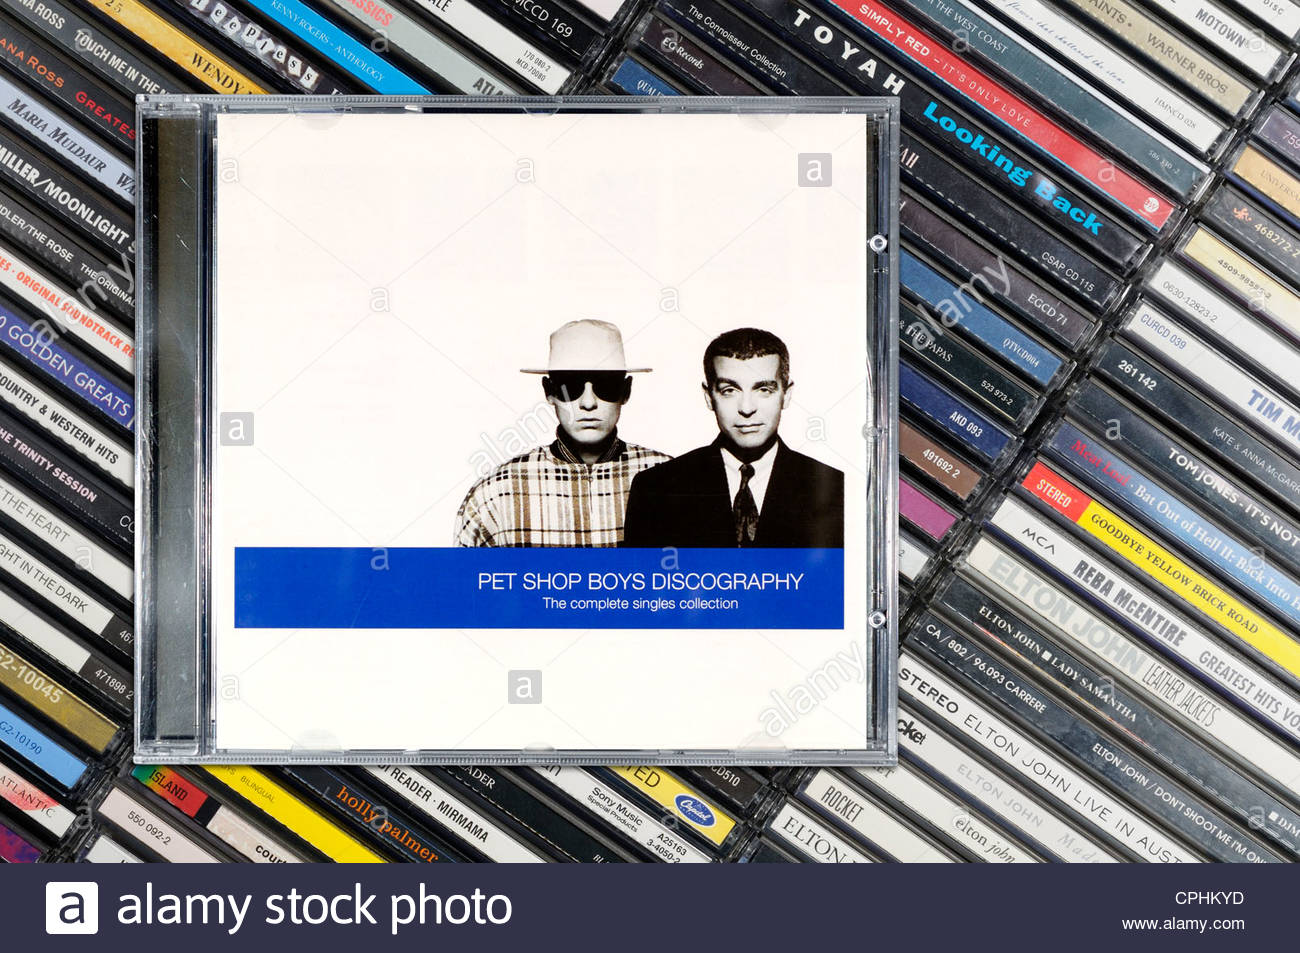 album, CD music collection cases, England. - Stock Image